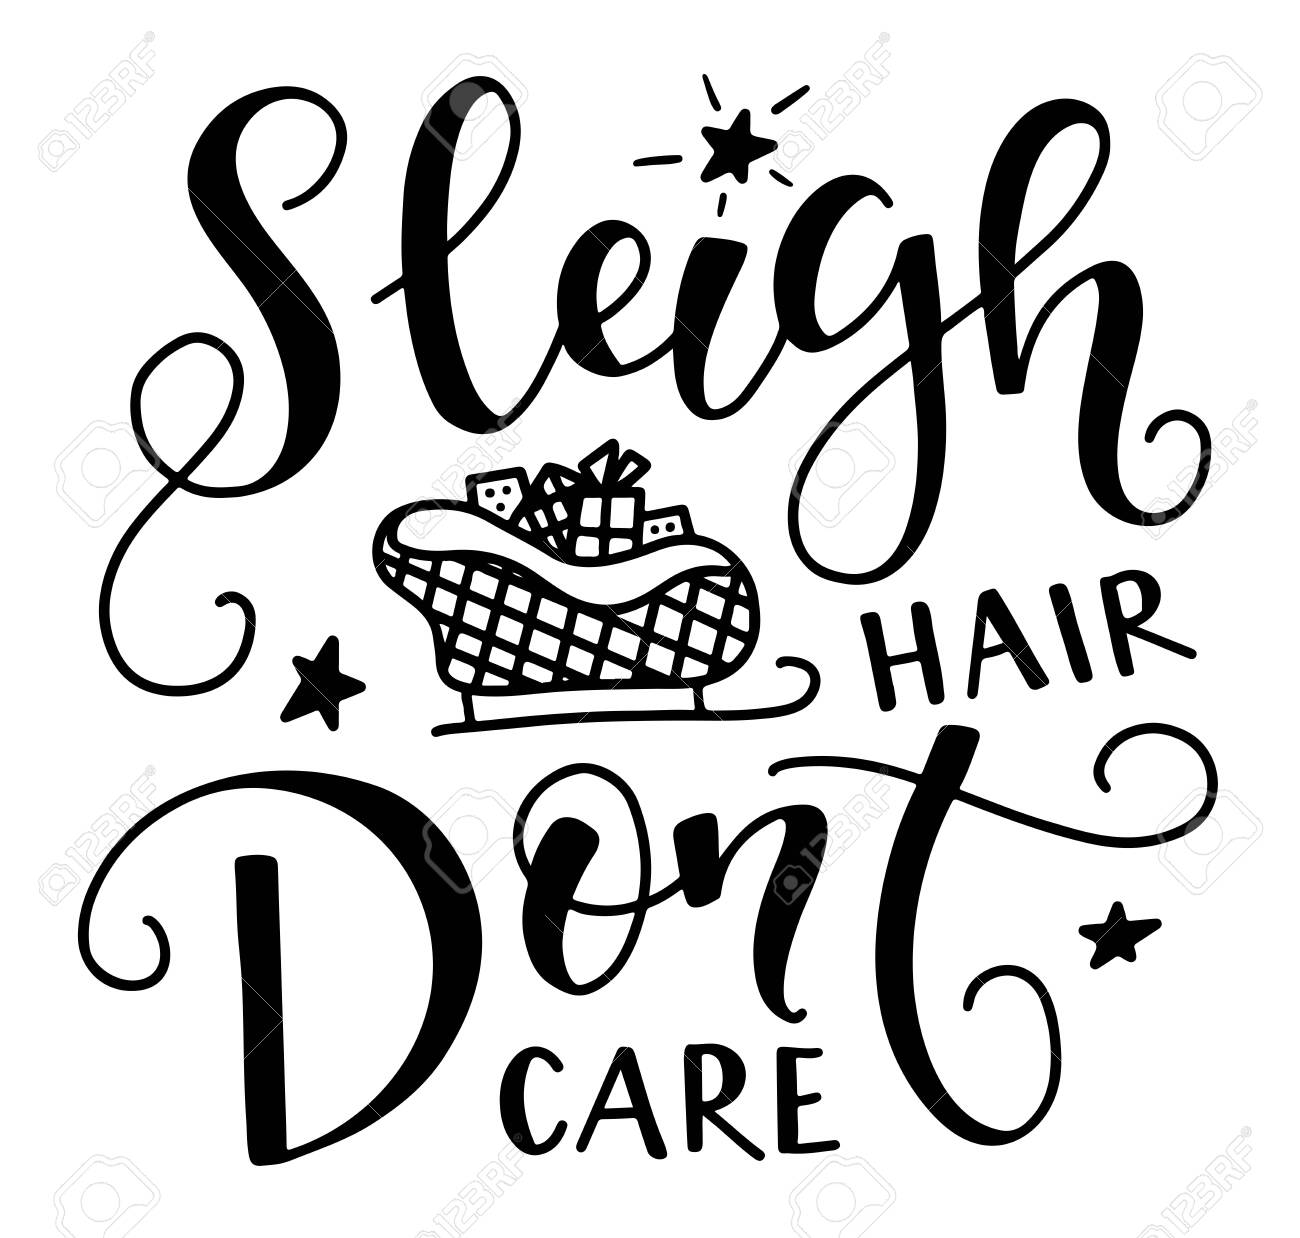 Sleigh hair dont care, black text isolated on white background, vector illustration for posters, photo overlays, card, t-shirt print and social media. - 153888536